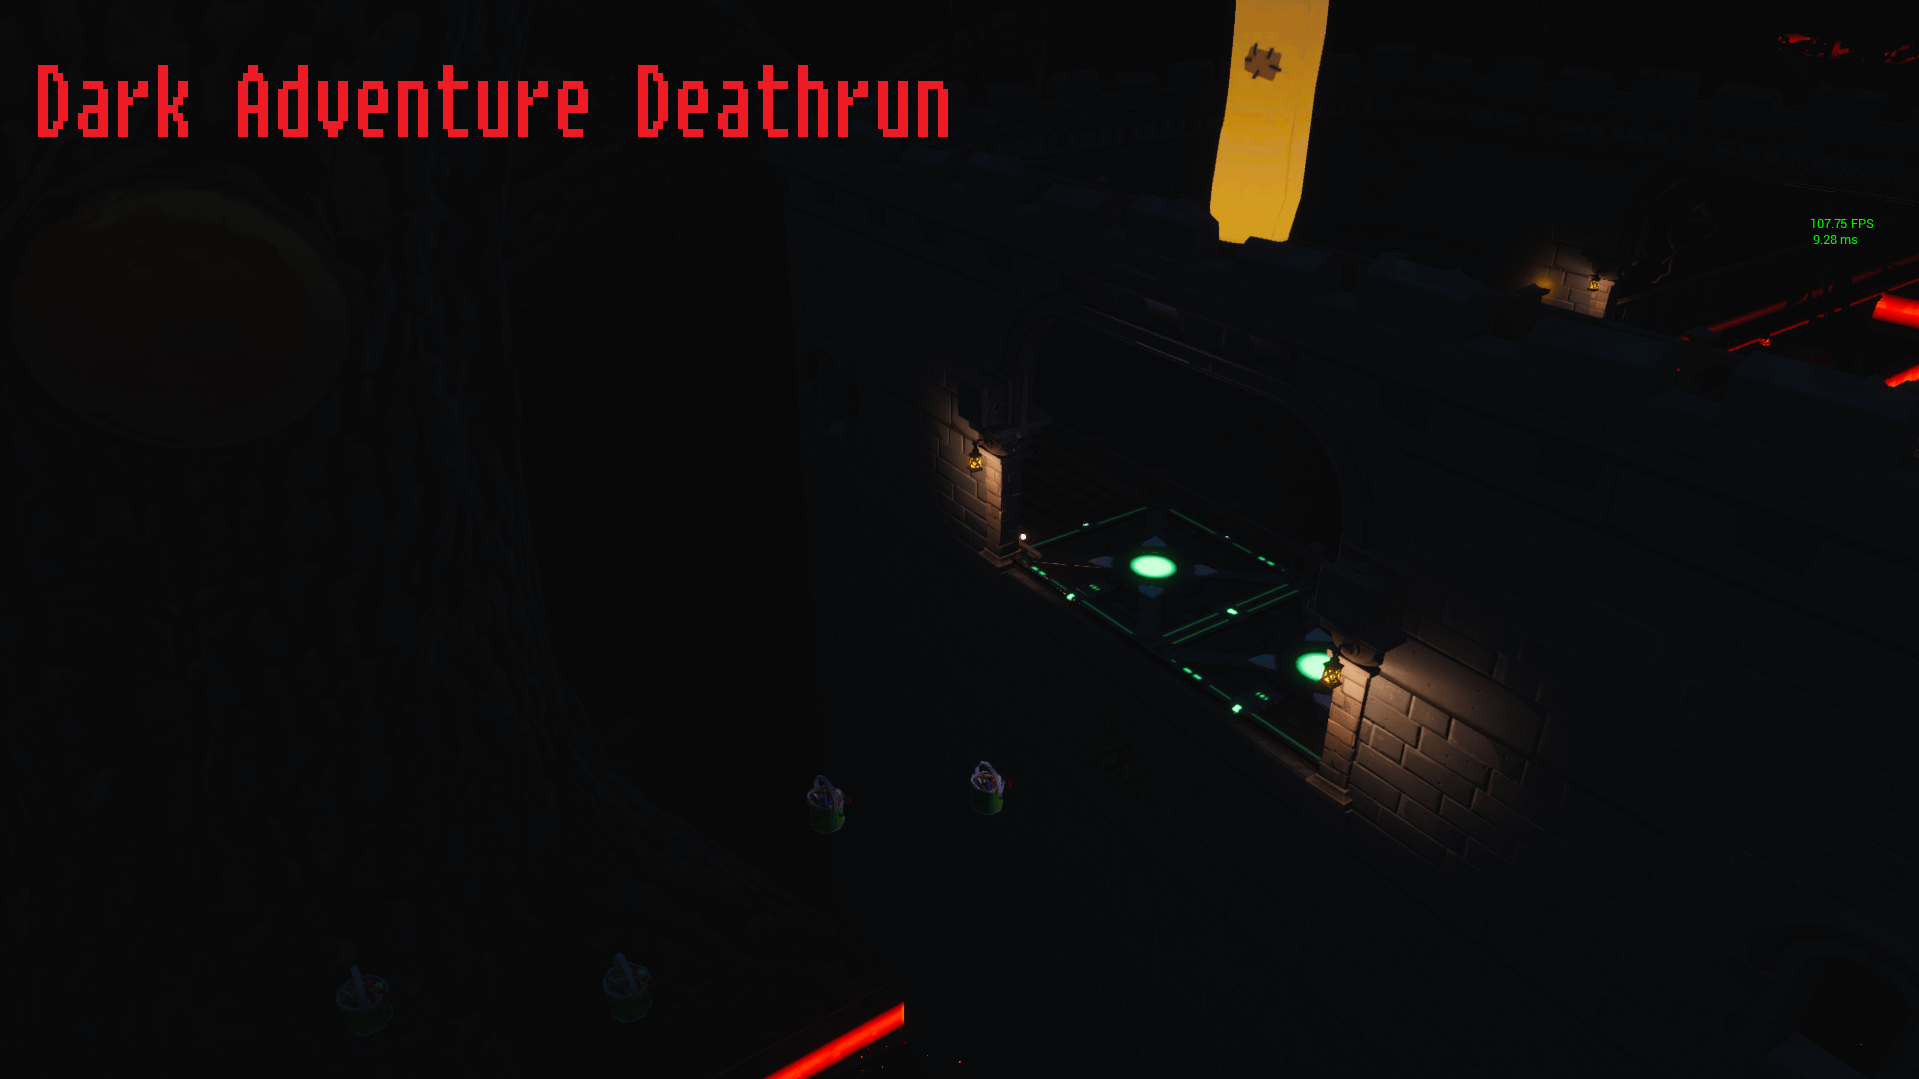 DARK ADVENTURE DEATHRUN BY PAN_GO